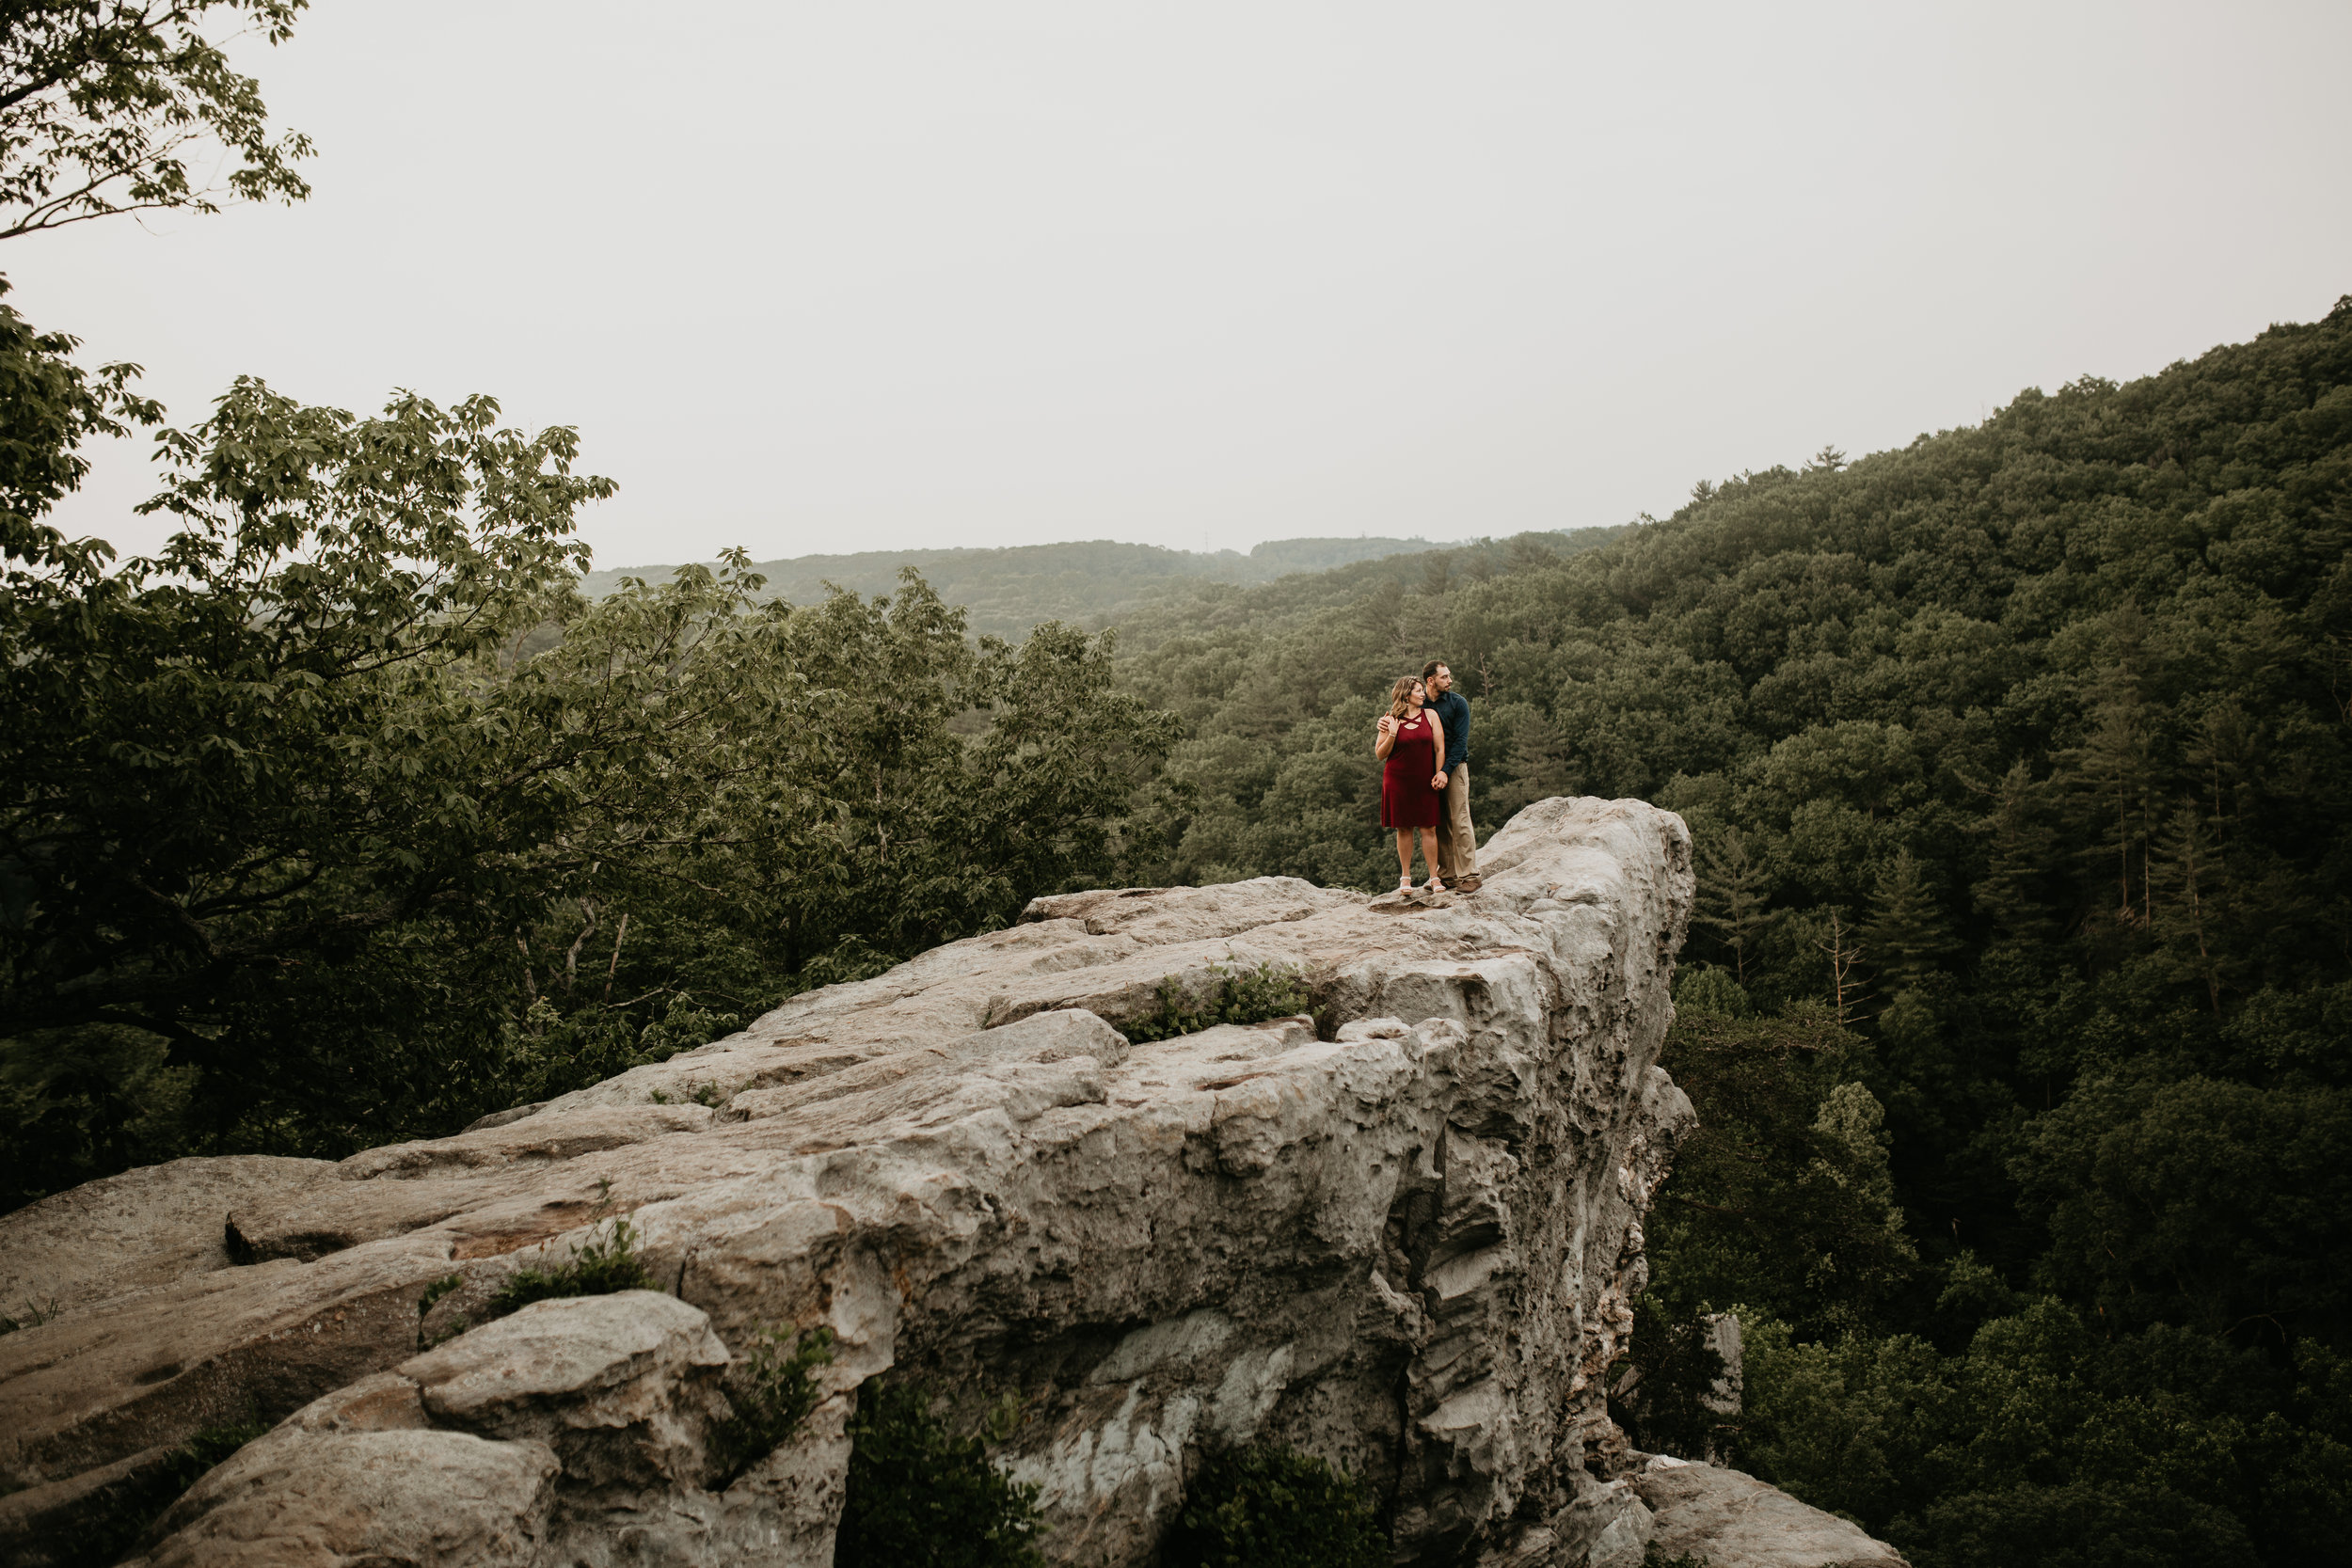 Nicole-Daacke-Photography-rock-state-park-overlook-king-queen-seat-maryland-hiking-adventure-engagement-session-photos-portraits-summer-bel-air-dog-engagement-session-24.jpg